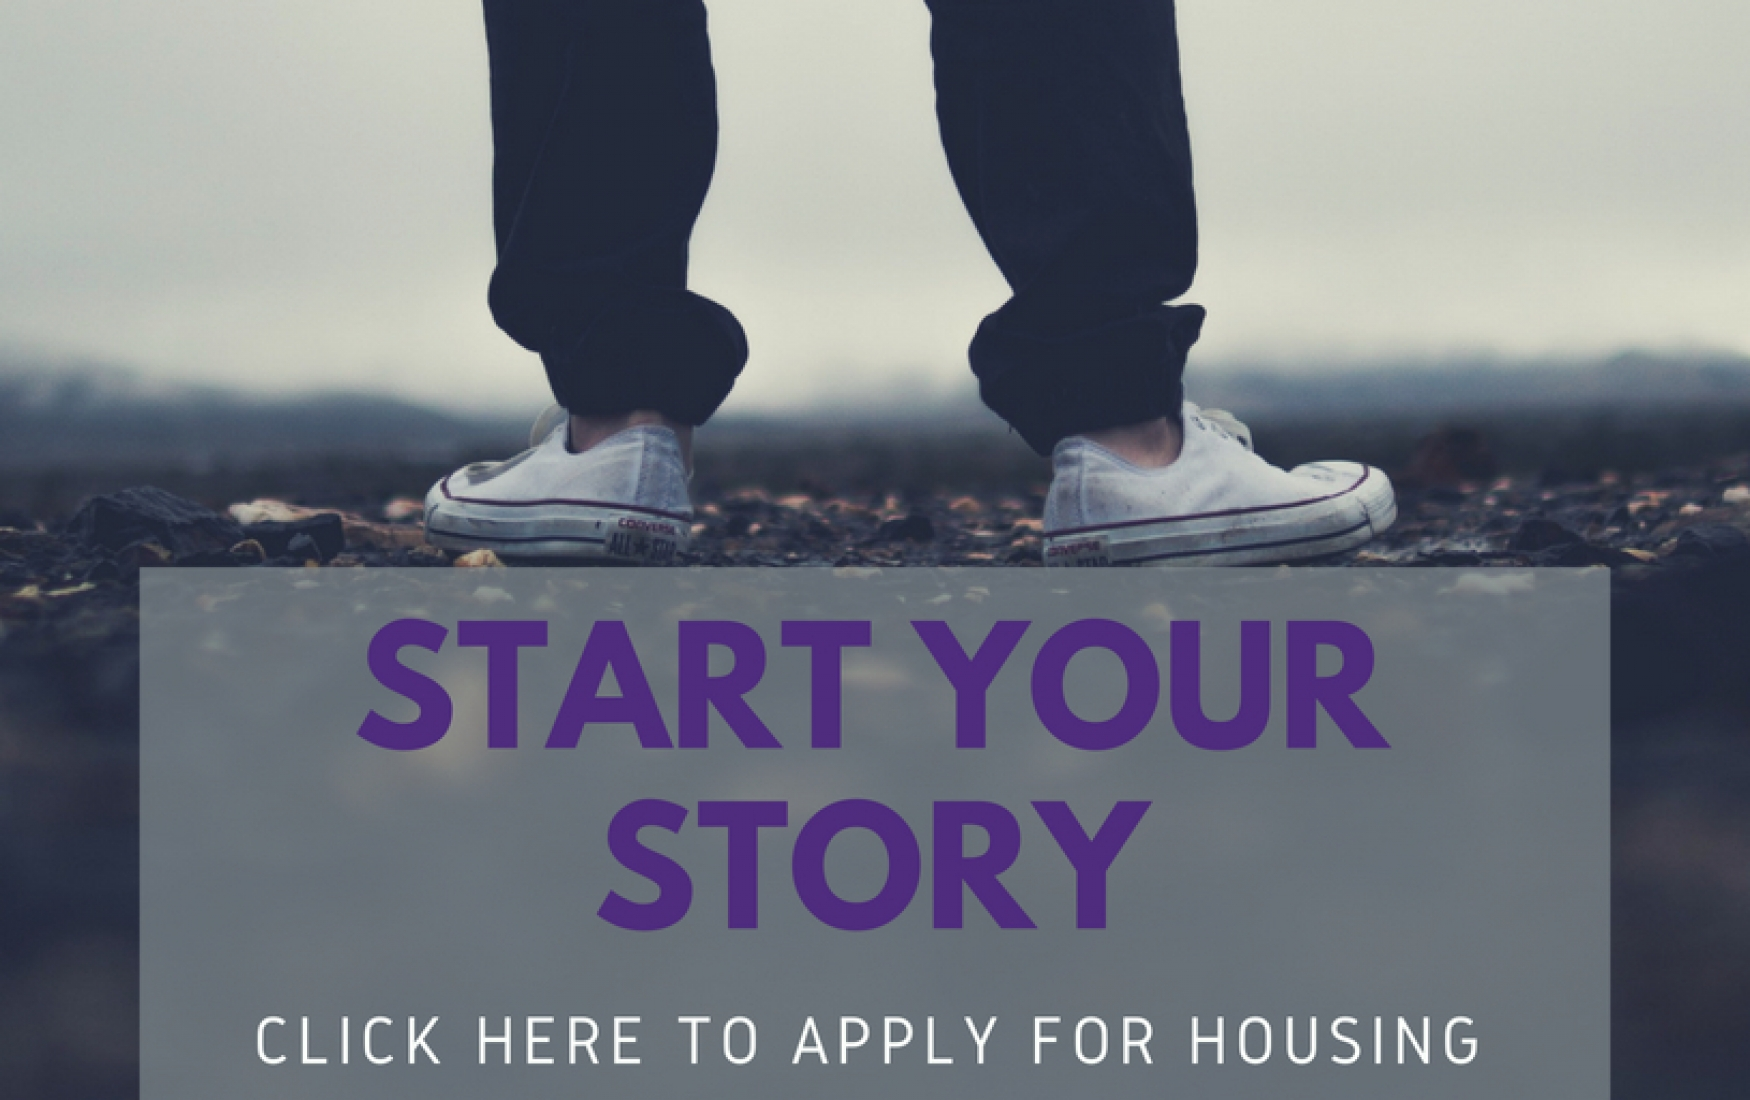 Start your story